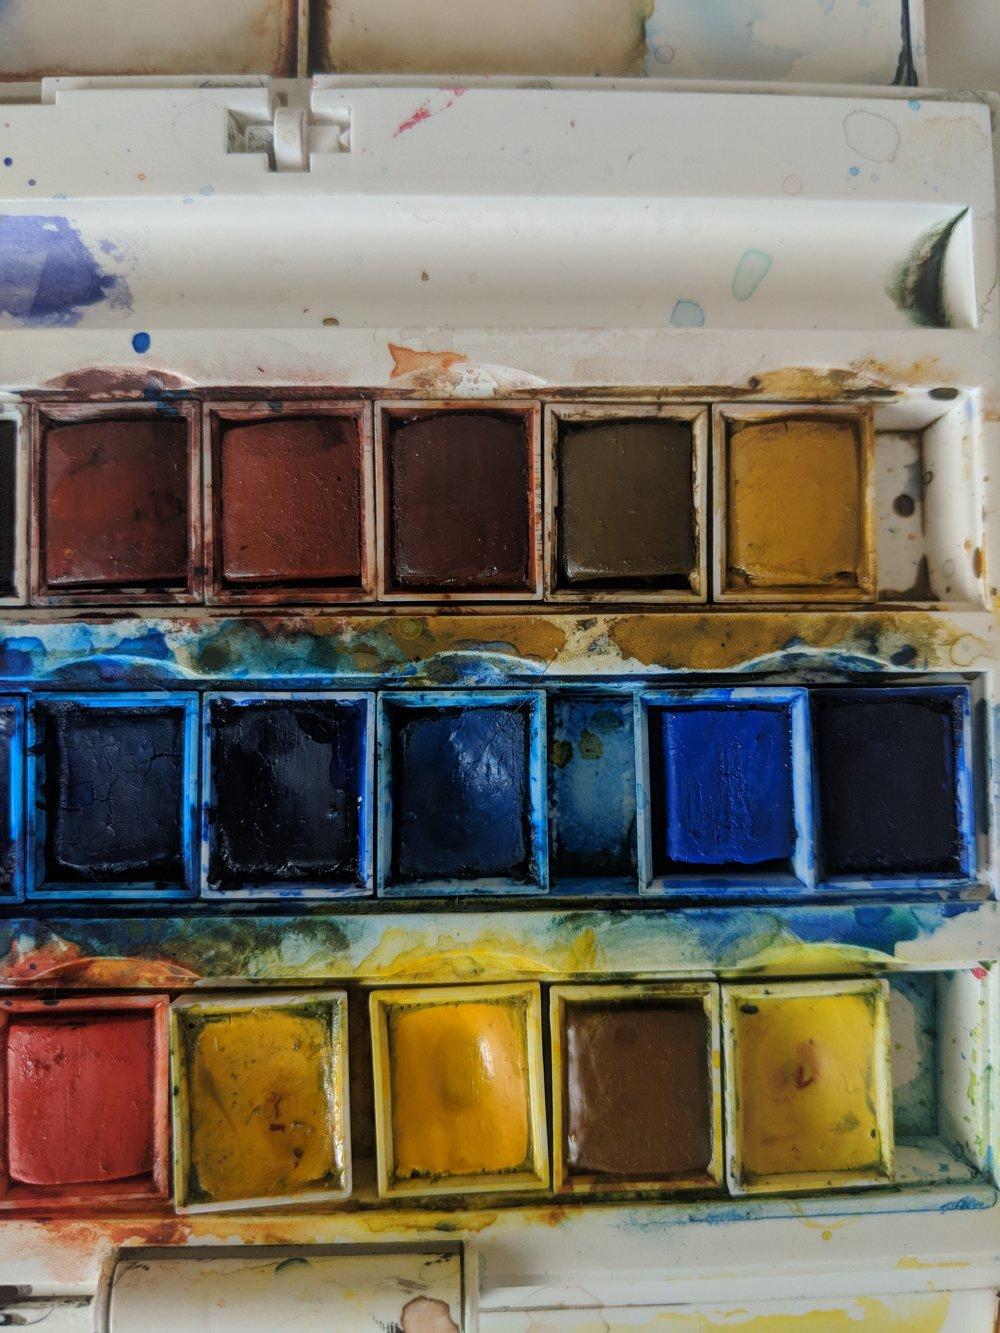 Palette Love - I don't do brown haha. Time to experiment with those unloved colours.